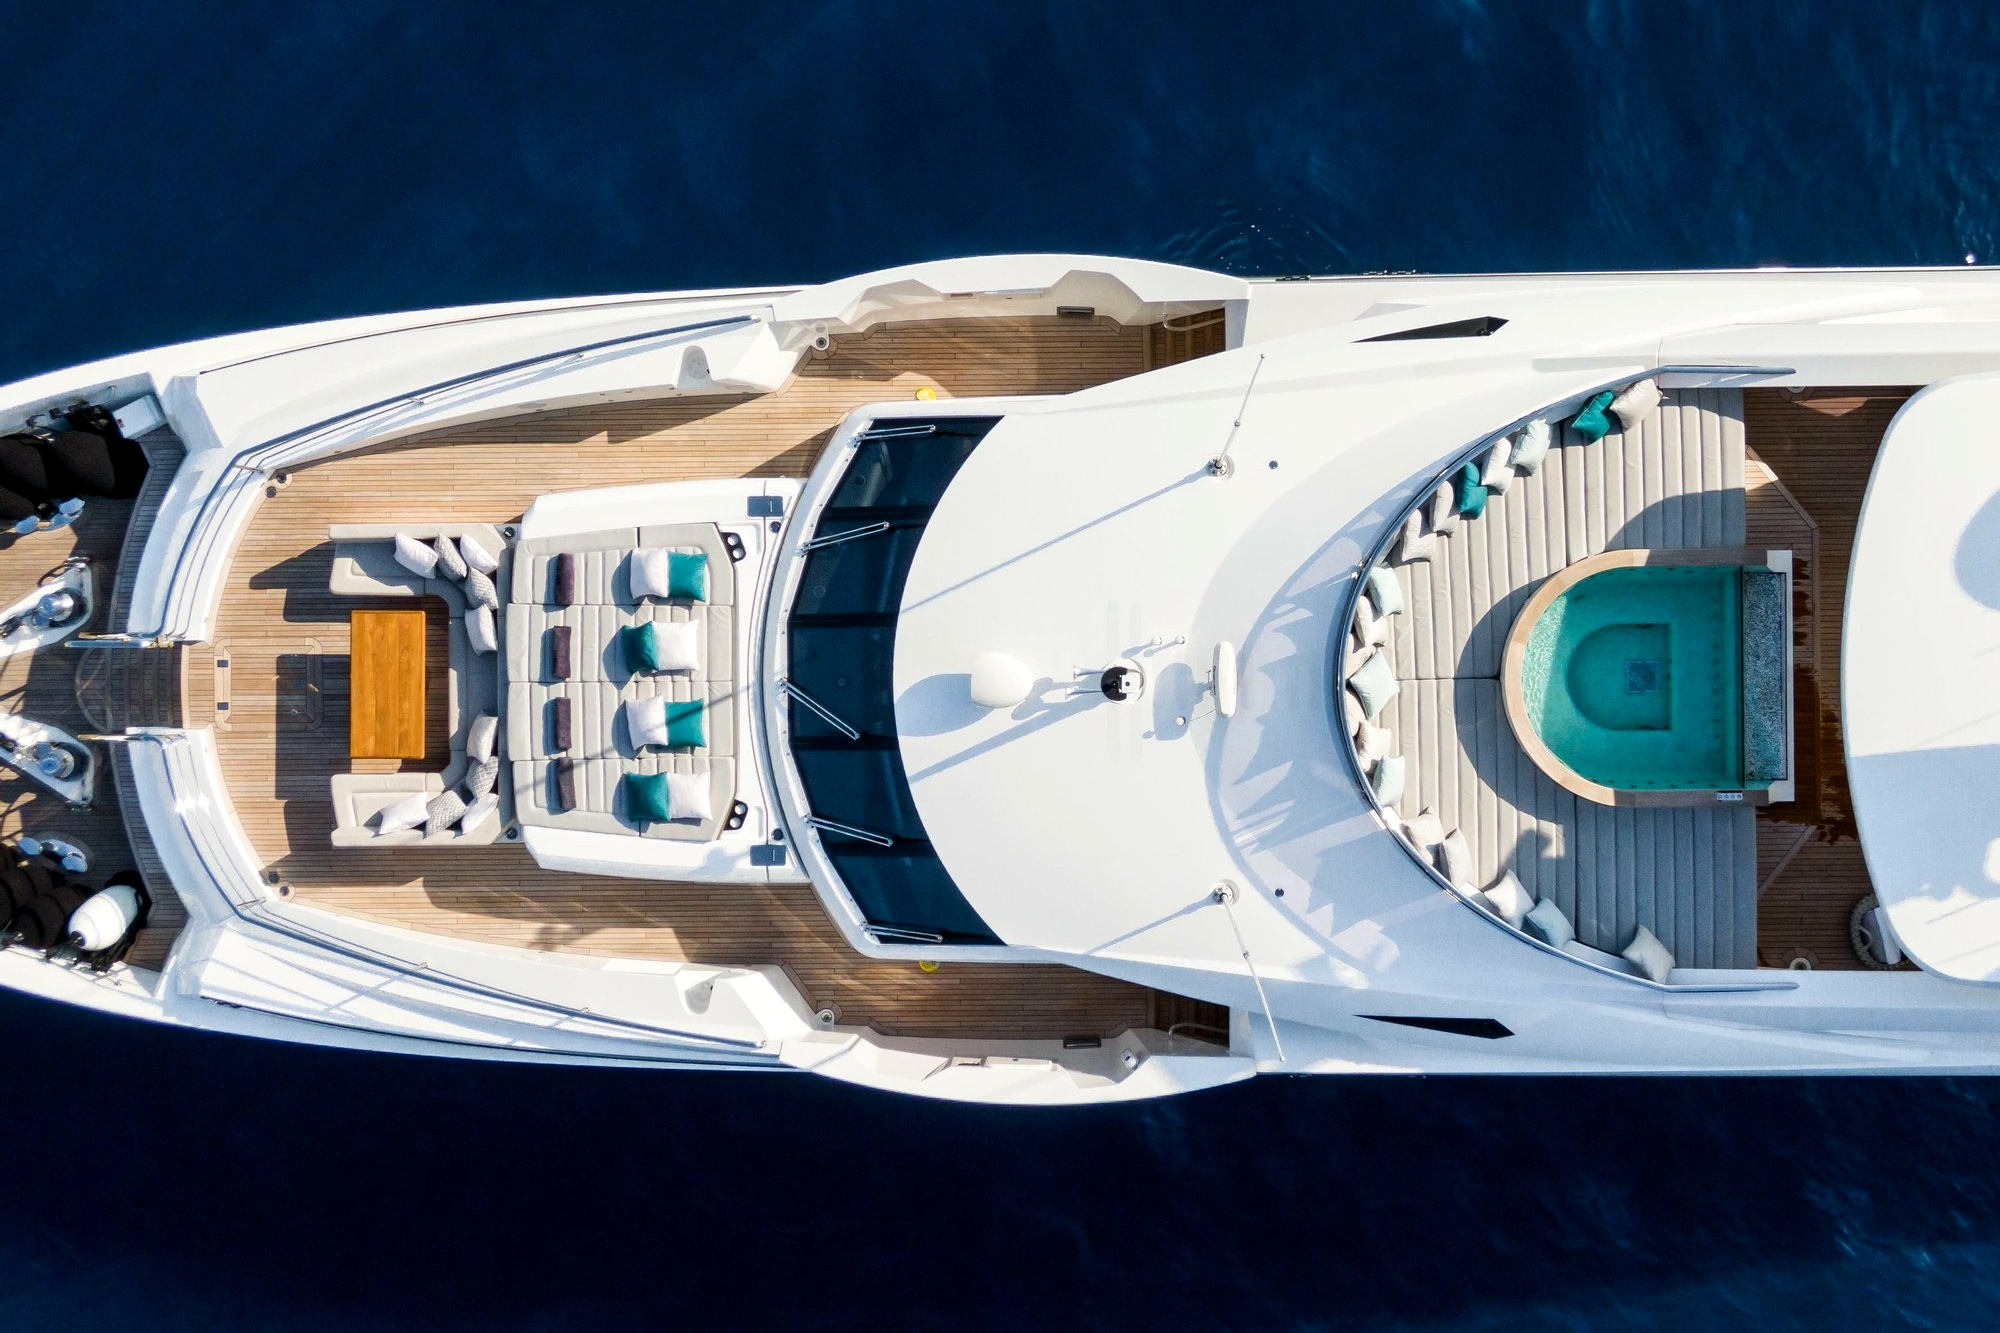 Houses on the water: Top 10 luxury yachts for self-isolated vacations ()